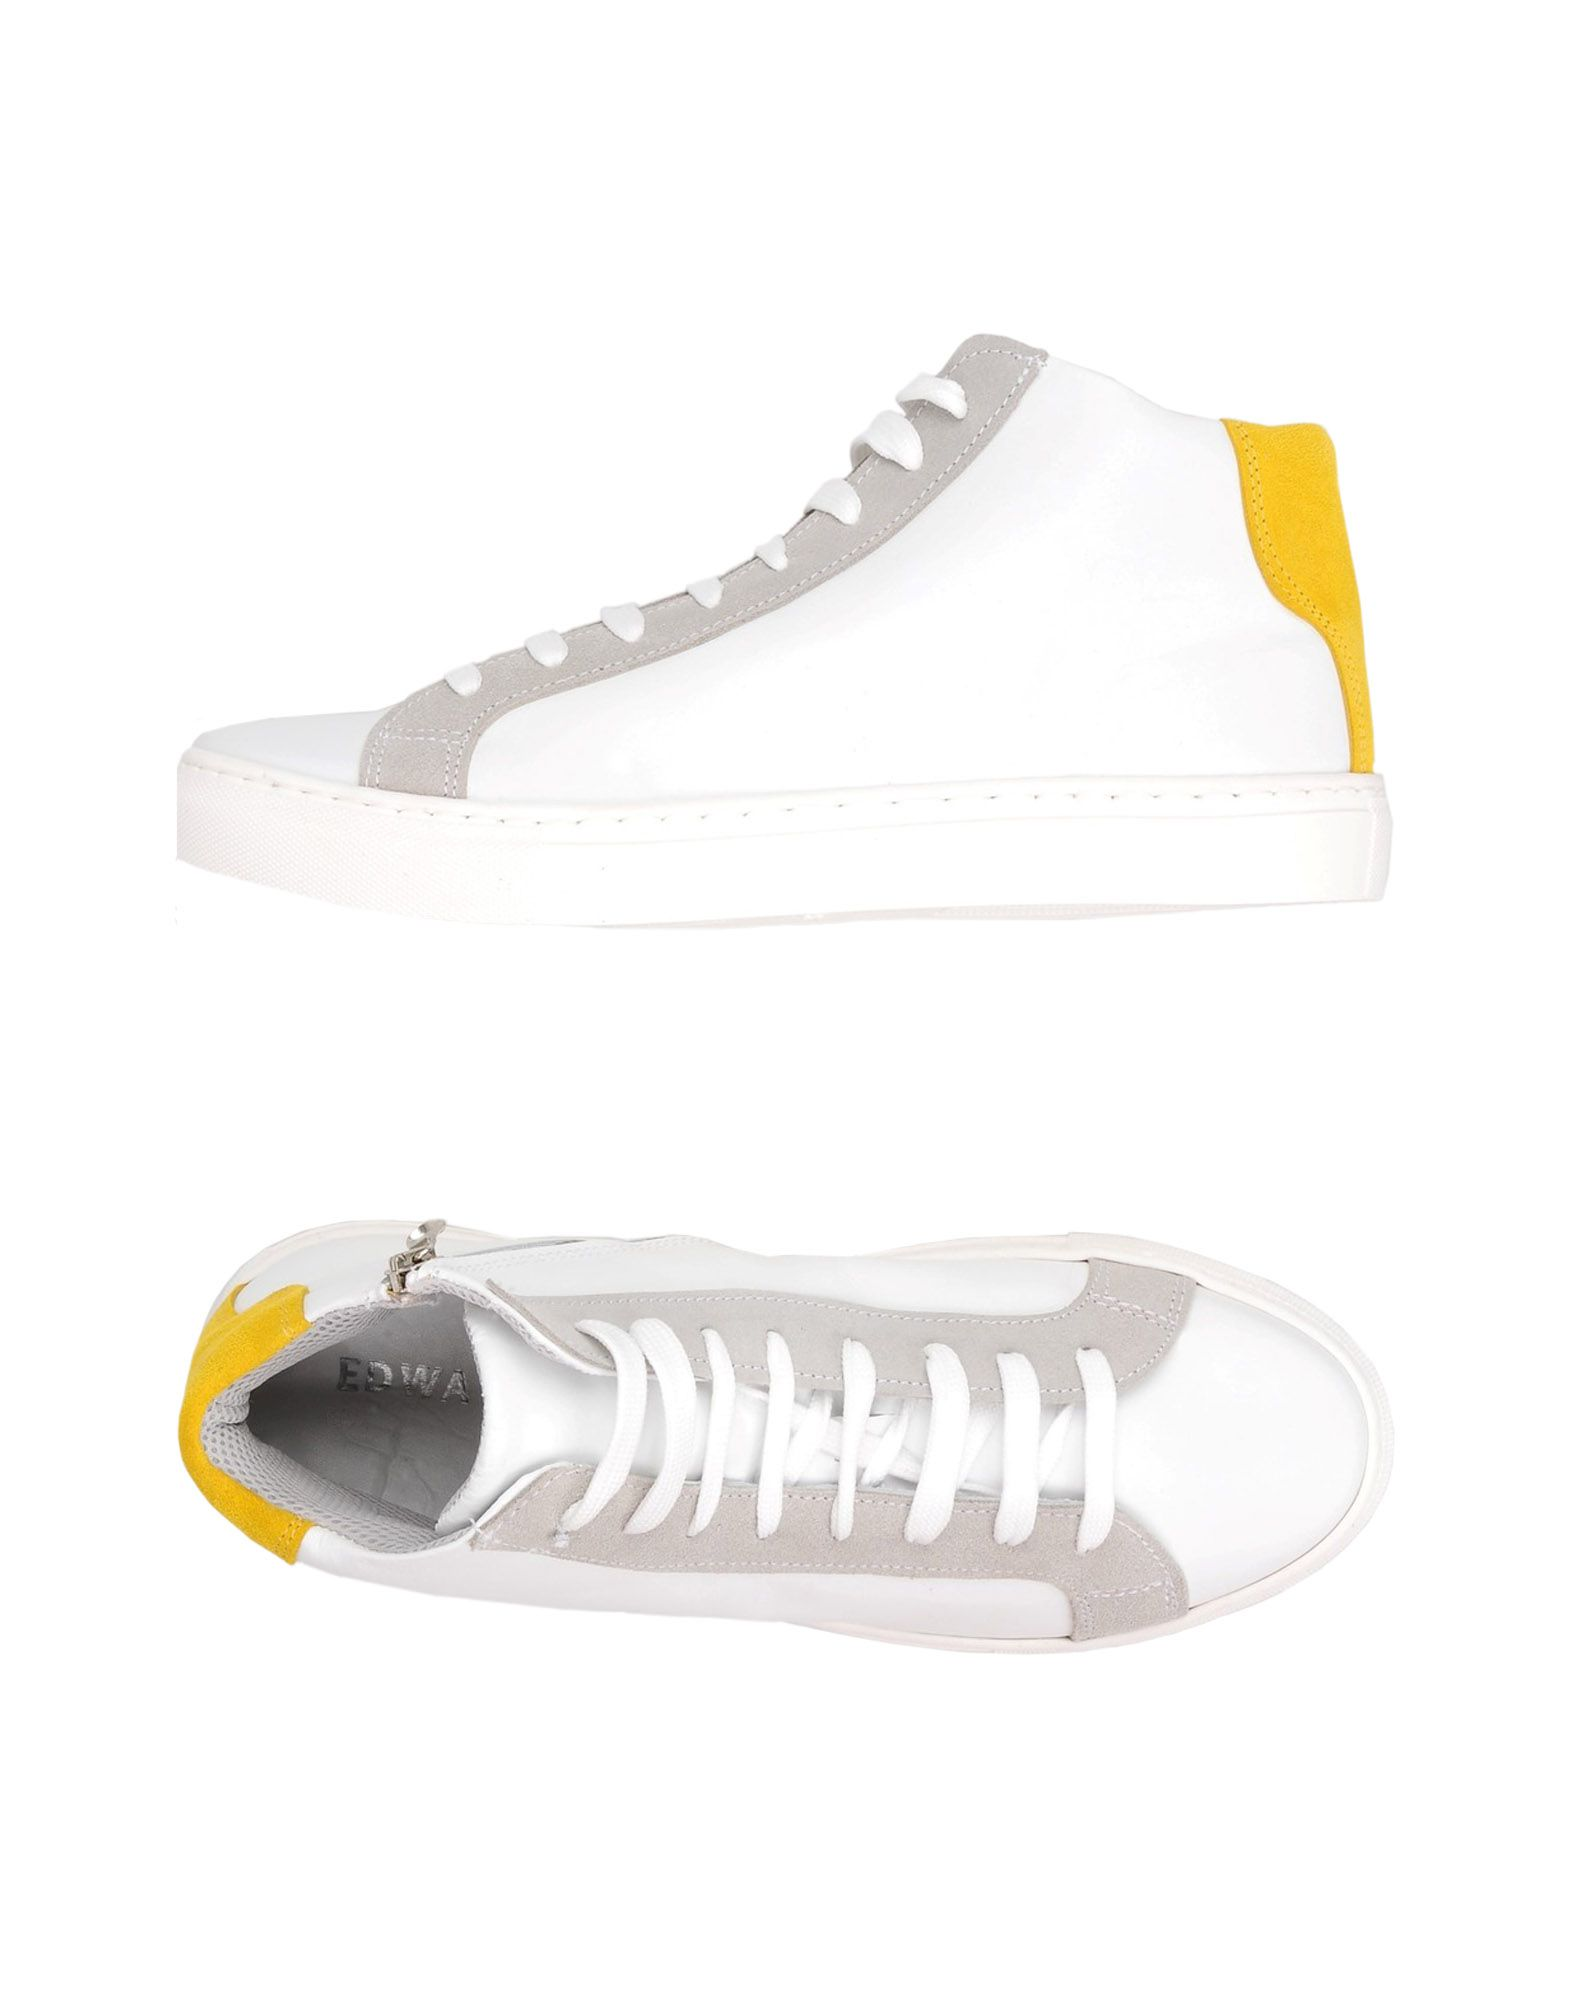 Sneakers Edwa Homme - Sneakers Edwa sur